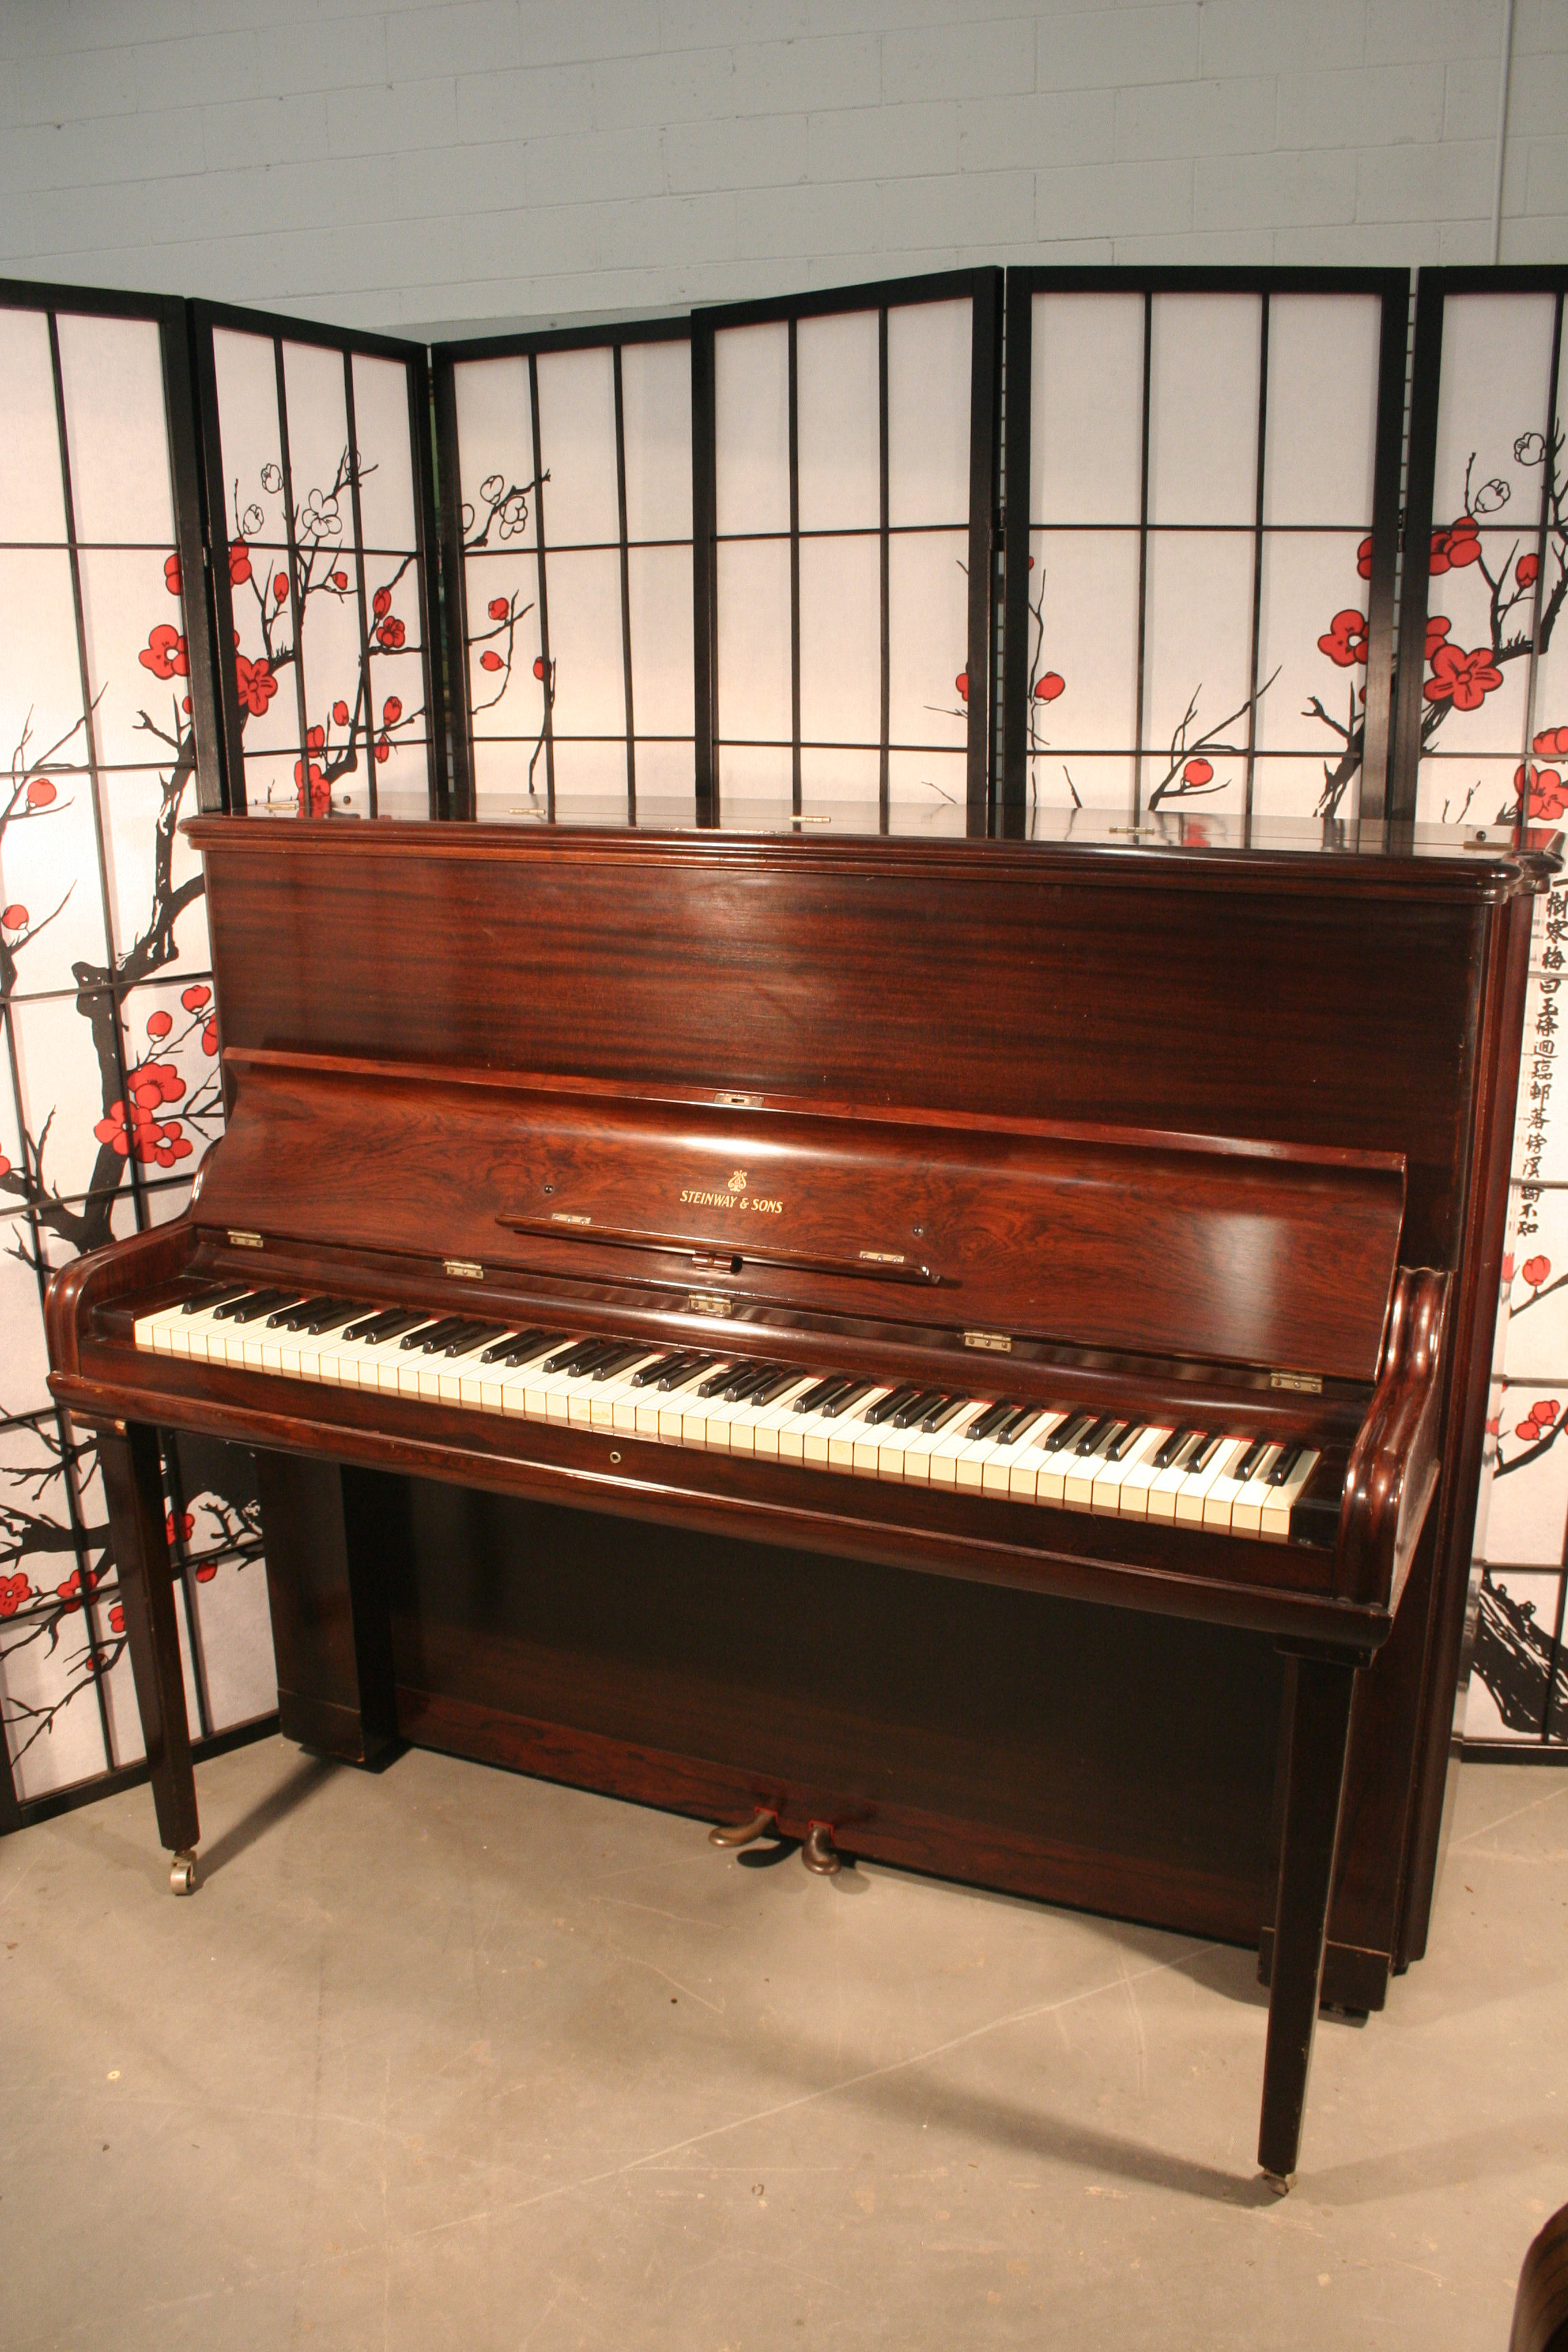 Win A Free Piano Contest 2nd Prize Steinway Studio Upright Piano,Rosewood Rebuilt/Refinished!